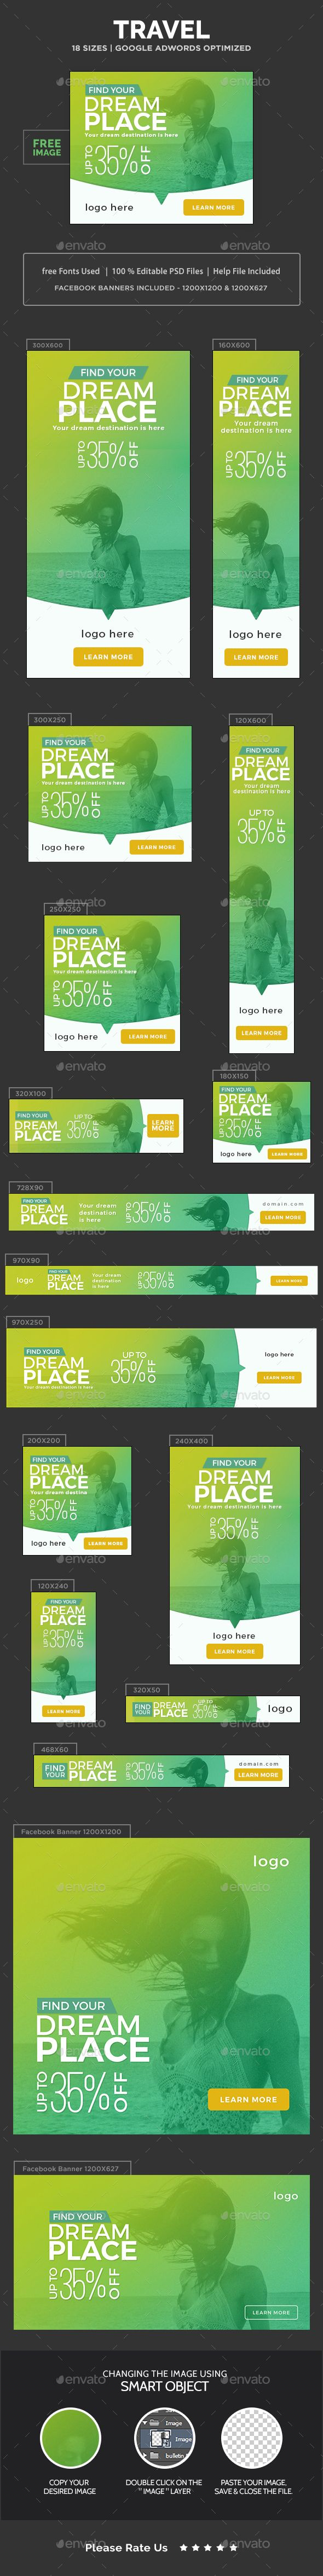 Travel Banners Template PSD. Download here: https://graphicriver.net/item/travel-banners/17617548?ref=ksioks